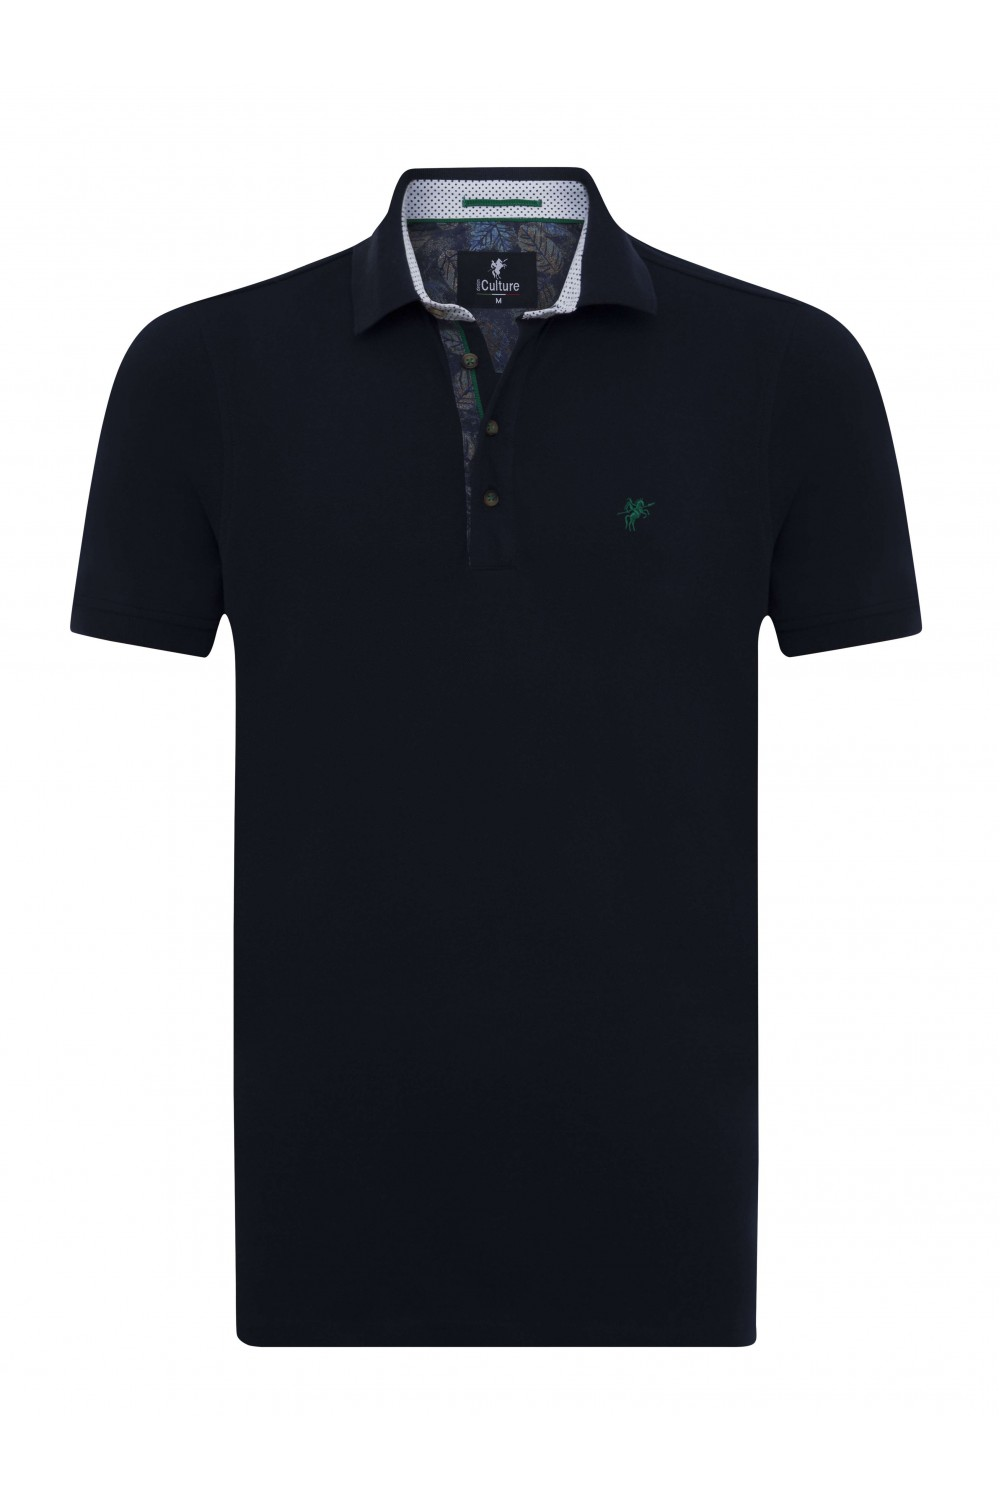 Herren Polo Shirt BLACK